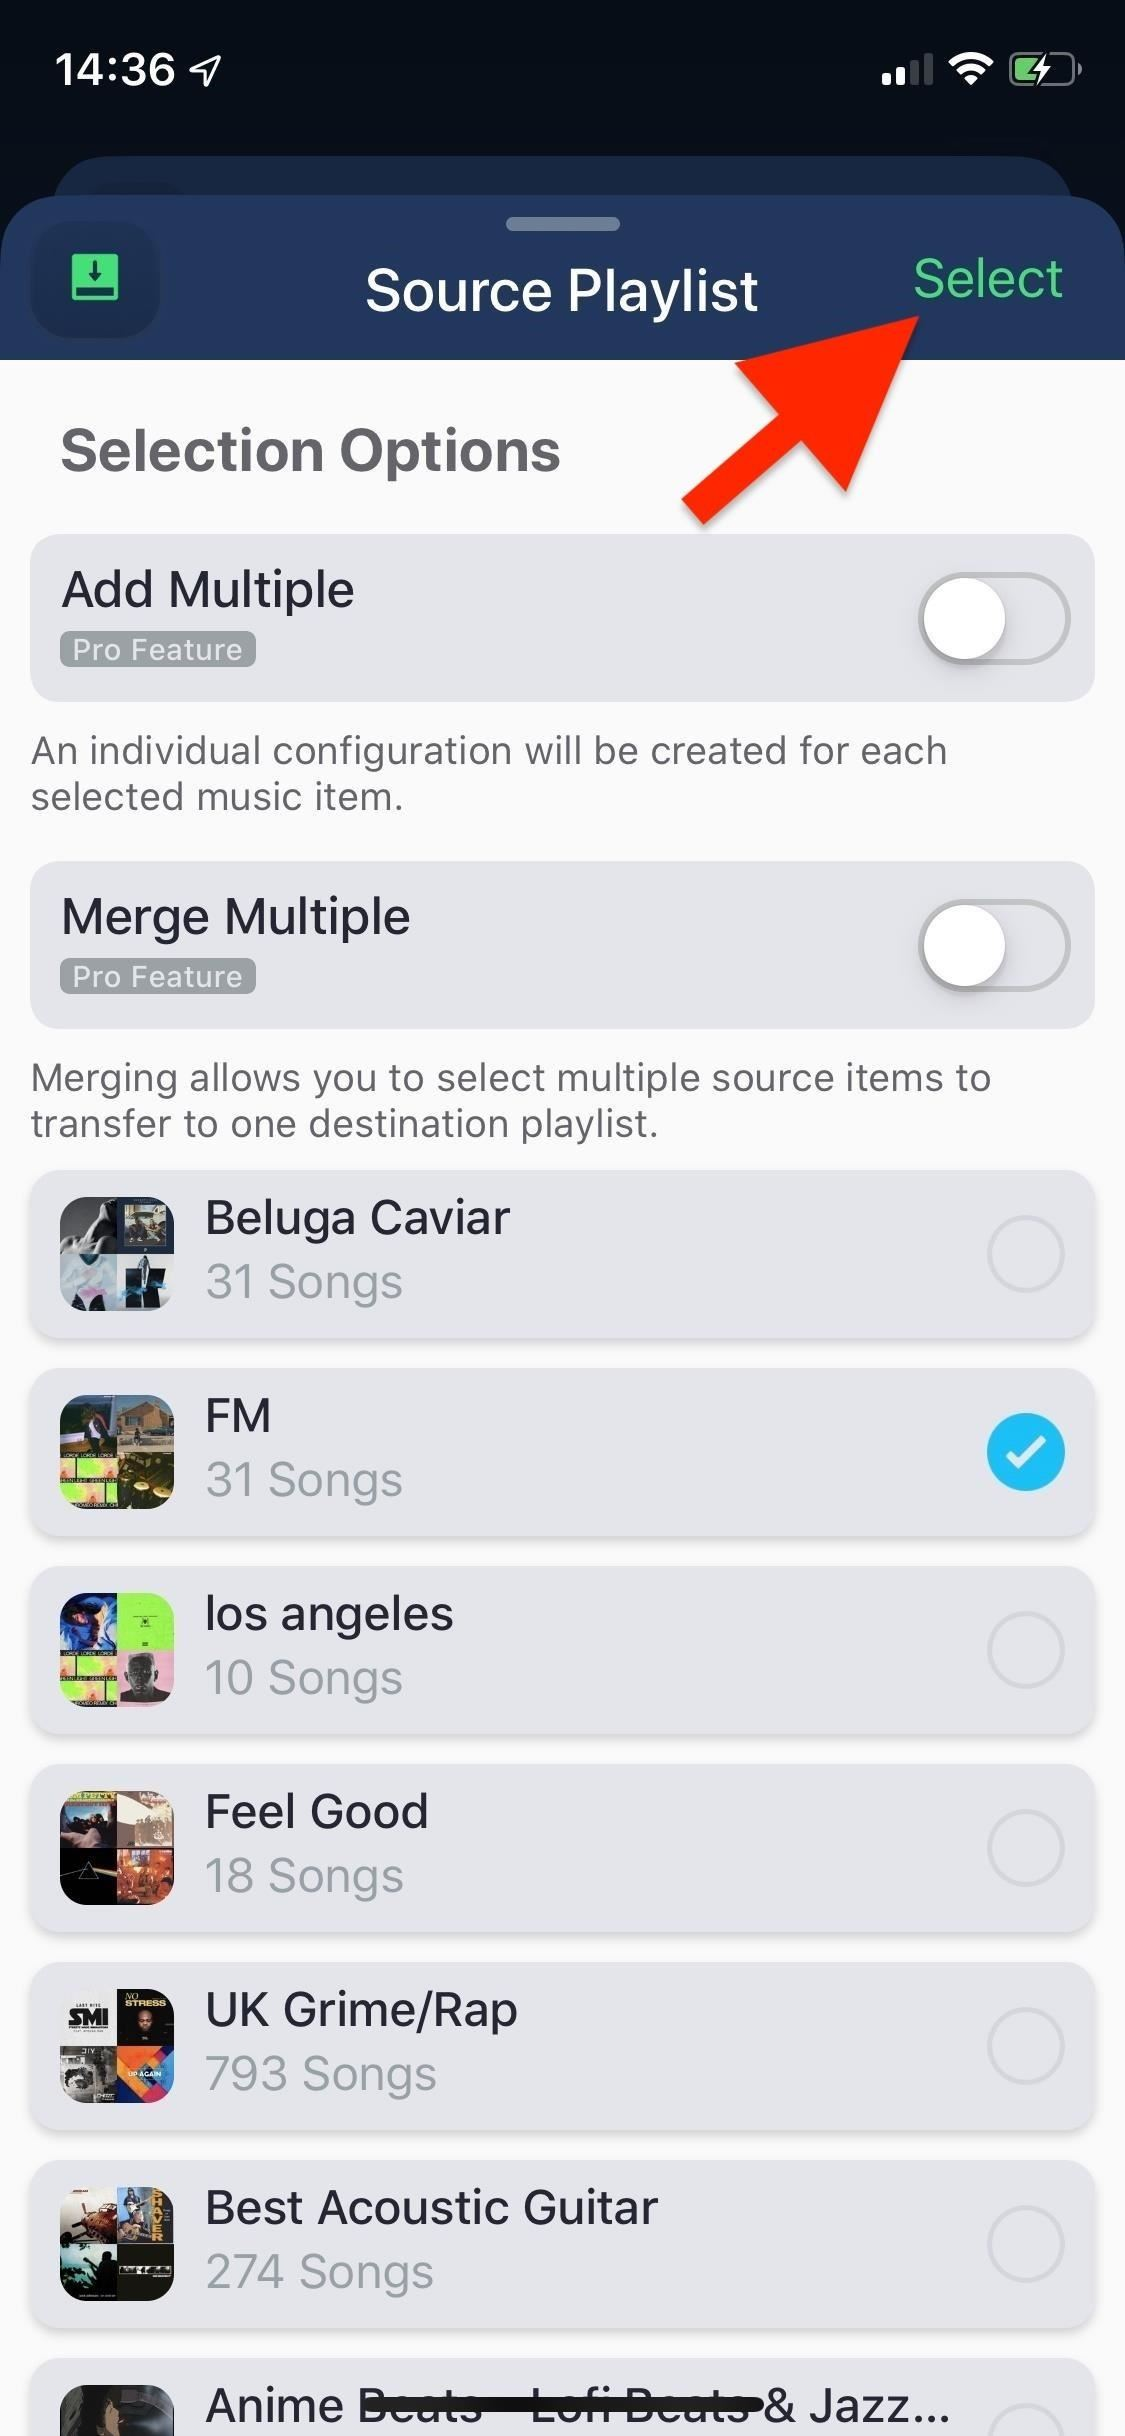 To transfer your Spotify playlists from an iPhone or Android phone to Apple Music